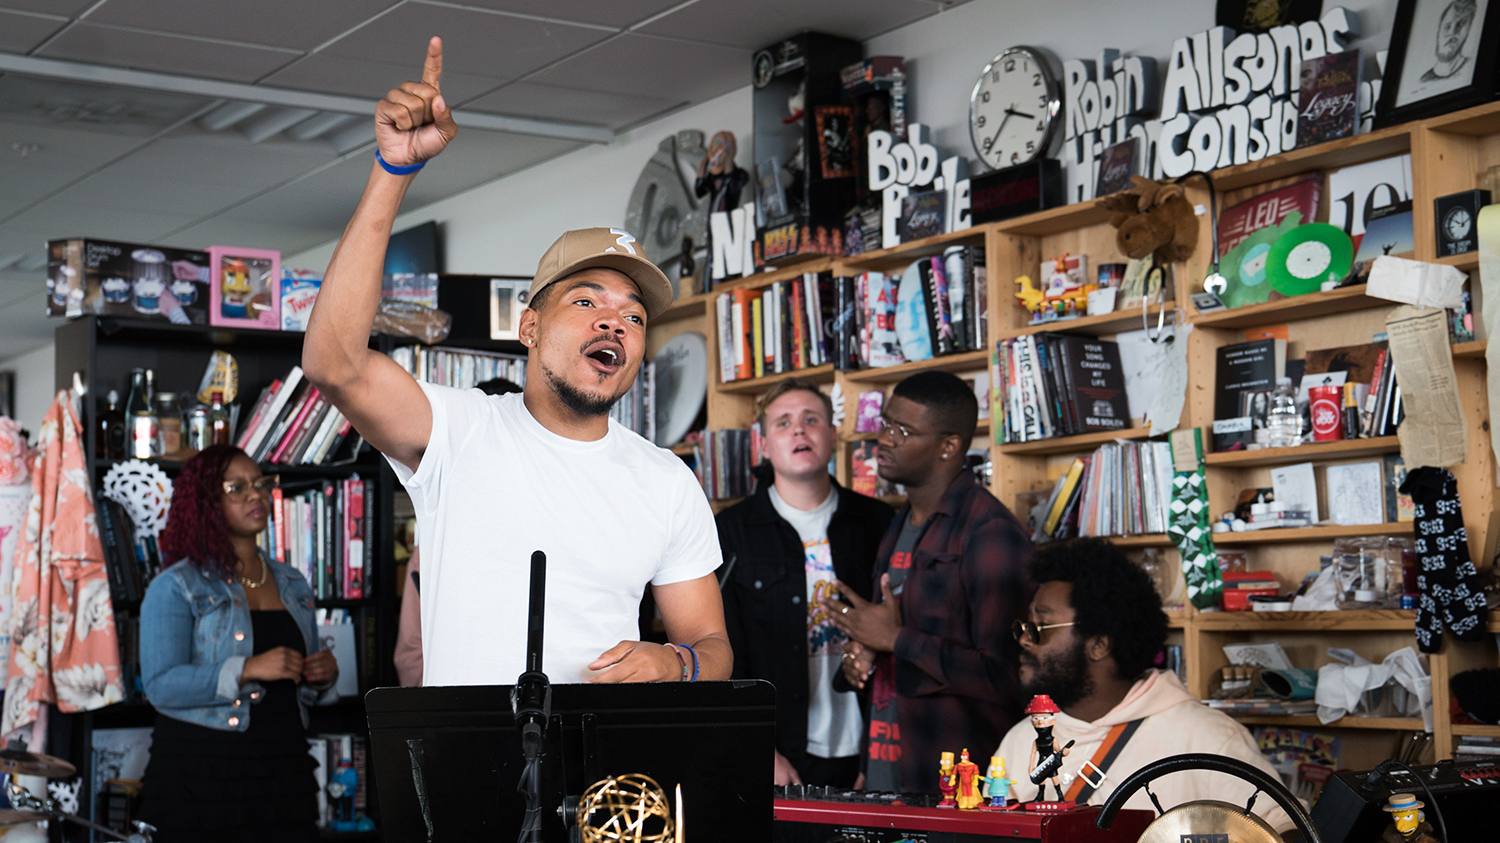 Chance The Rapper Delivers a Soulful Performance on NPR's Tiny Desk Concert